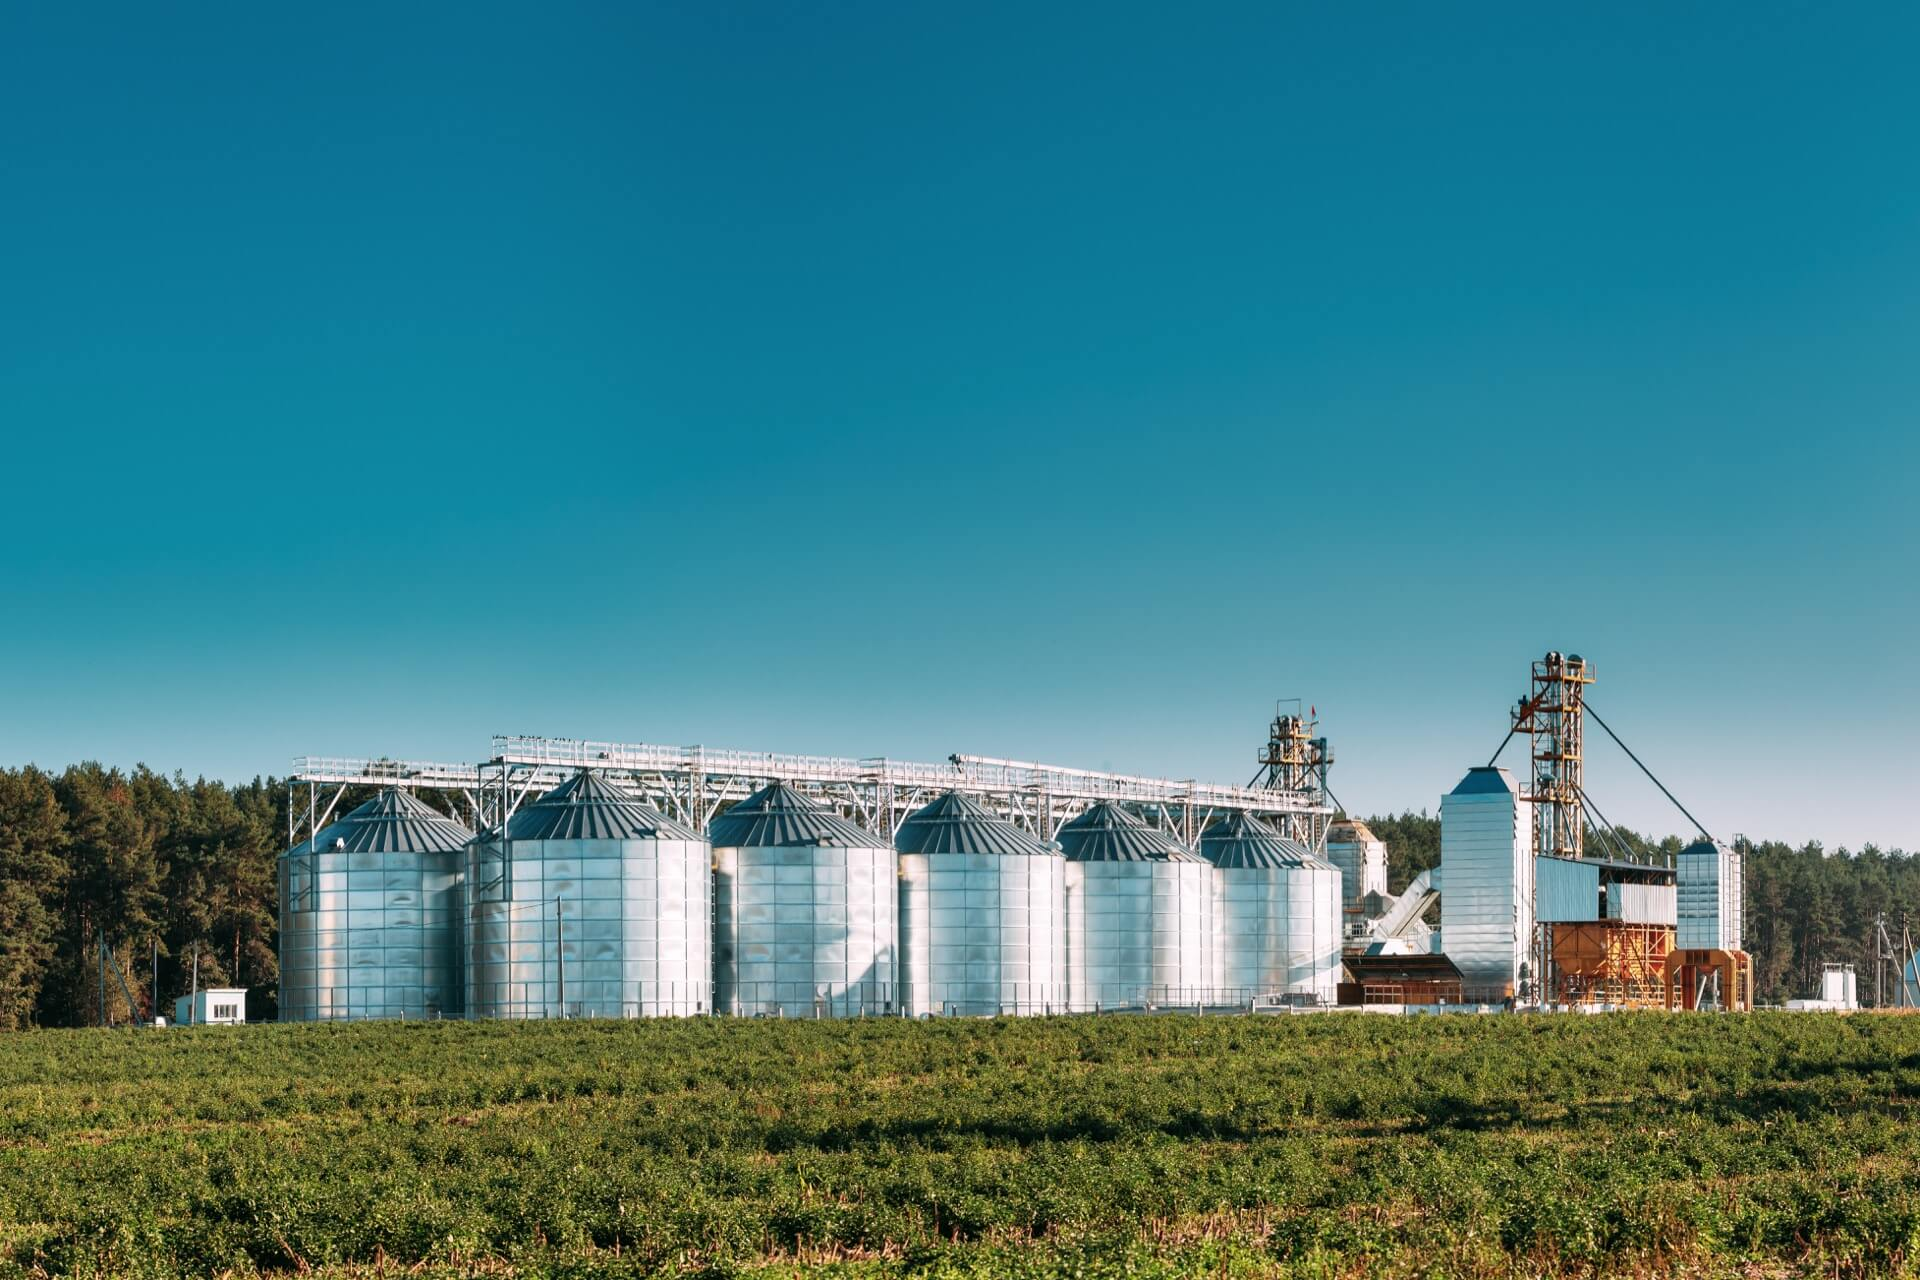 Image of an american grainery and silos